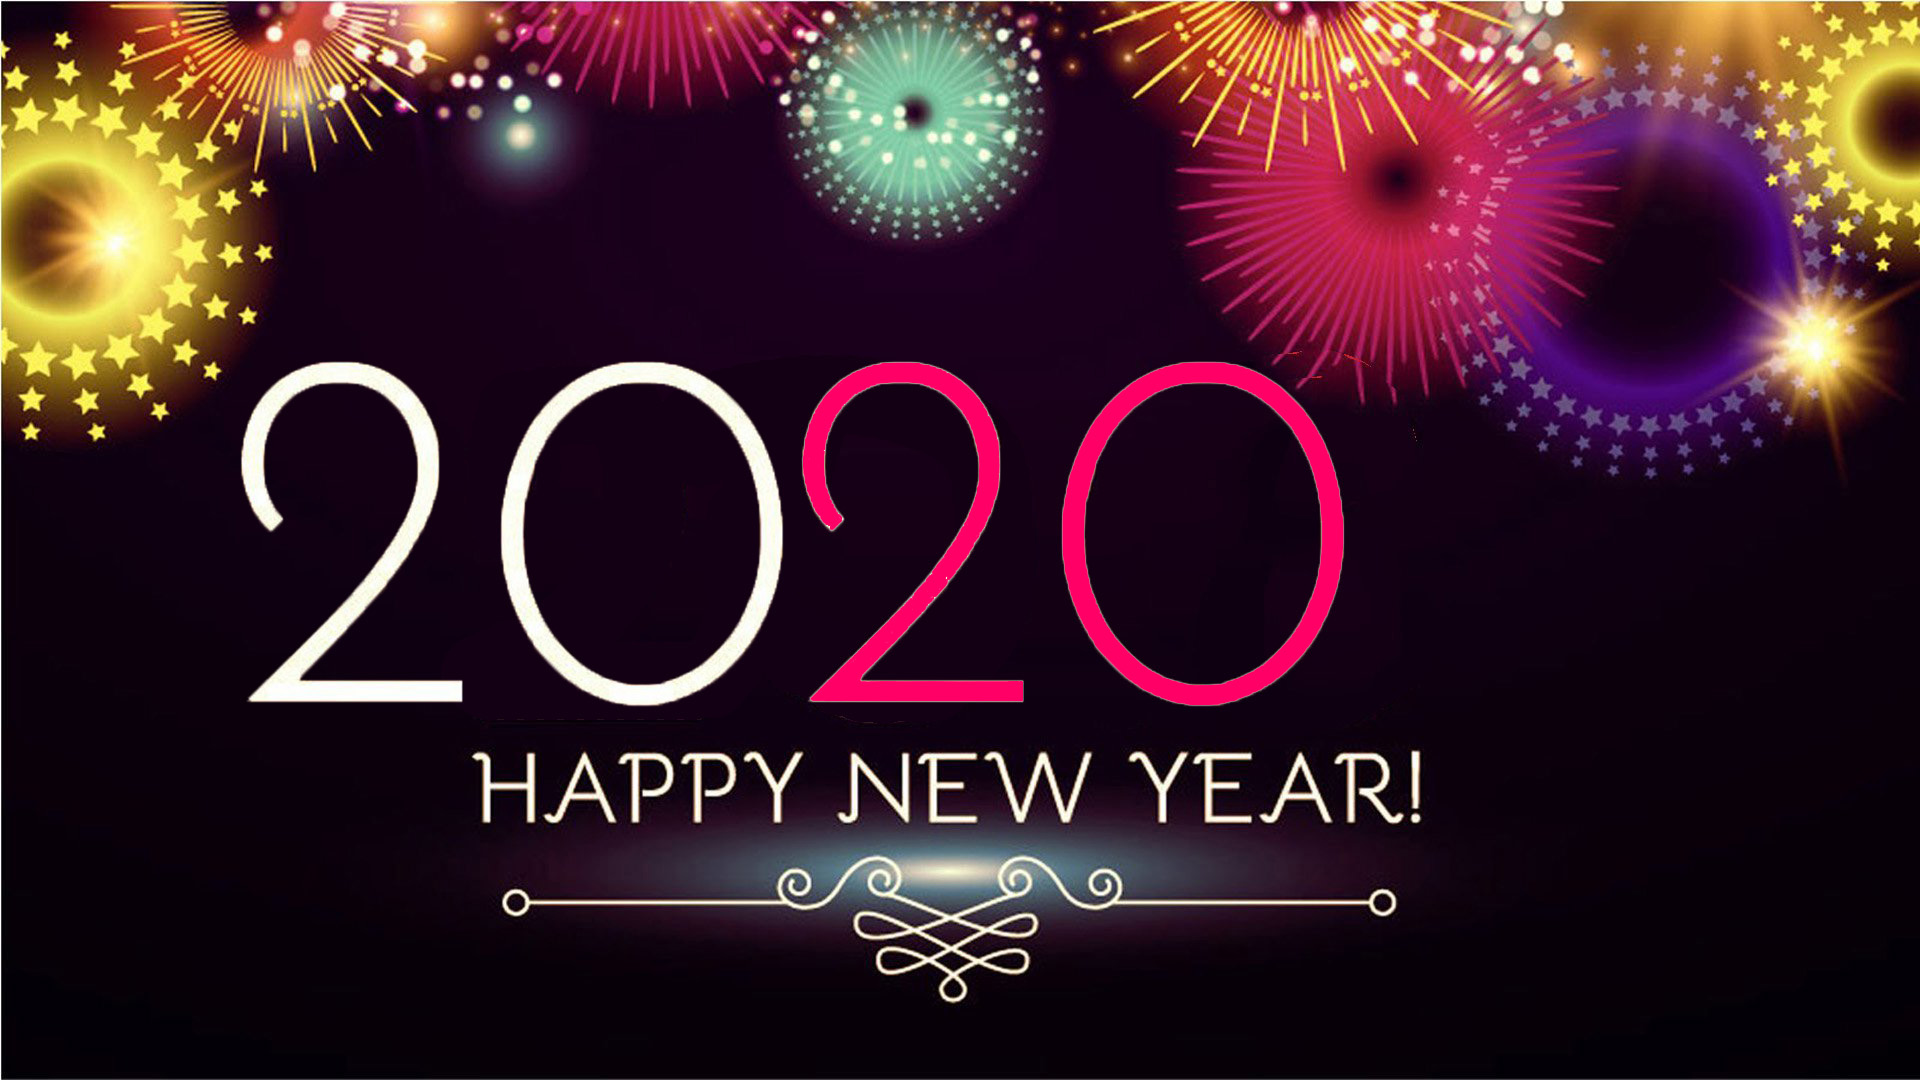 Happy New Year 2020 Wishes Greetings Sms Messaging With Picture 1920x1080